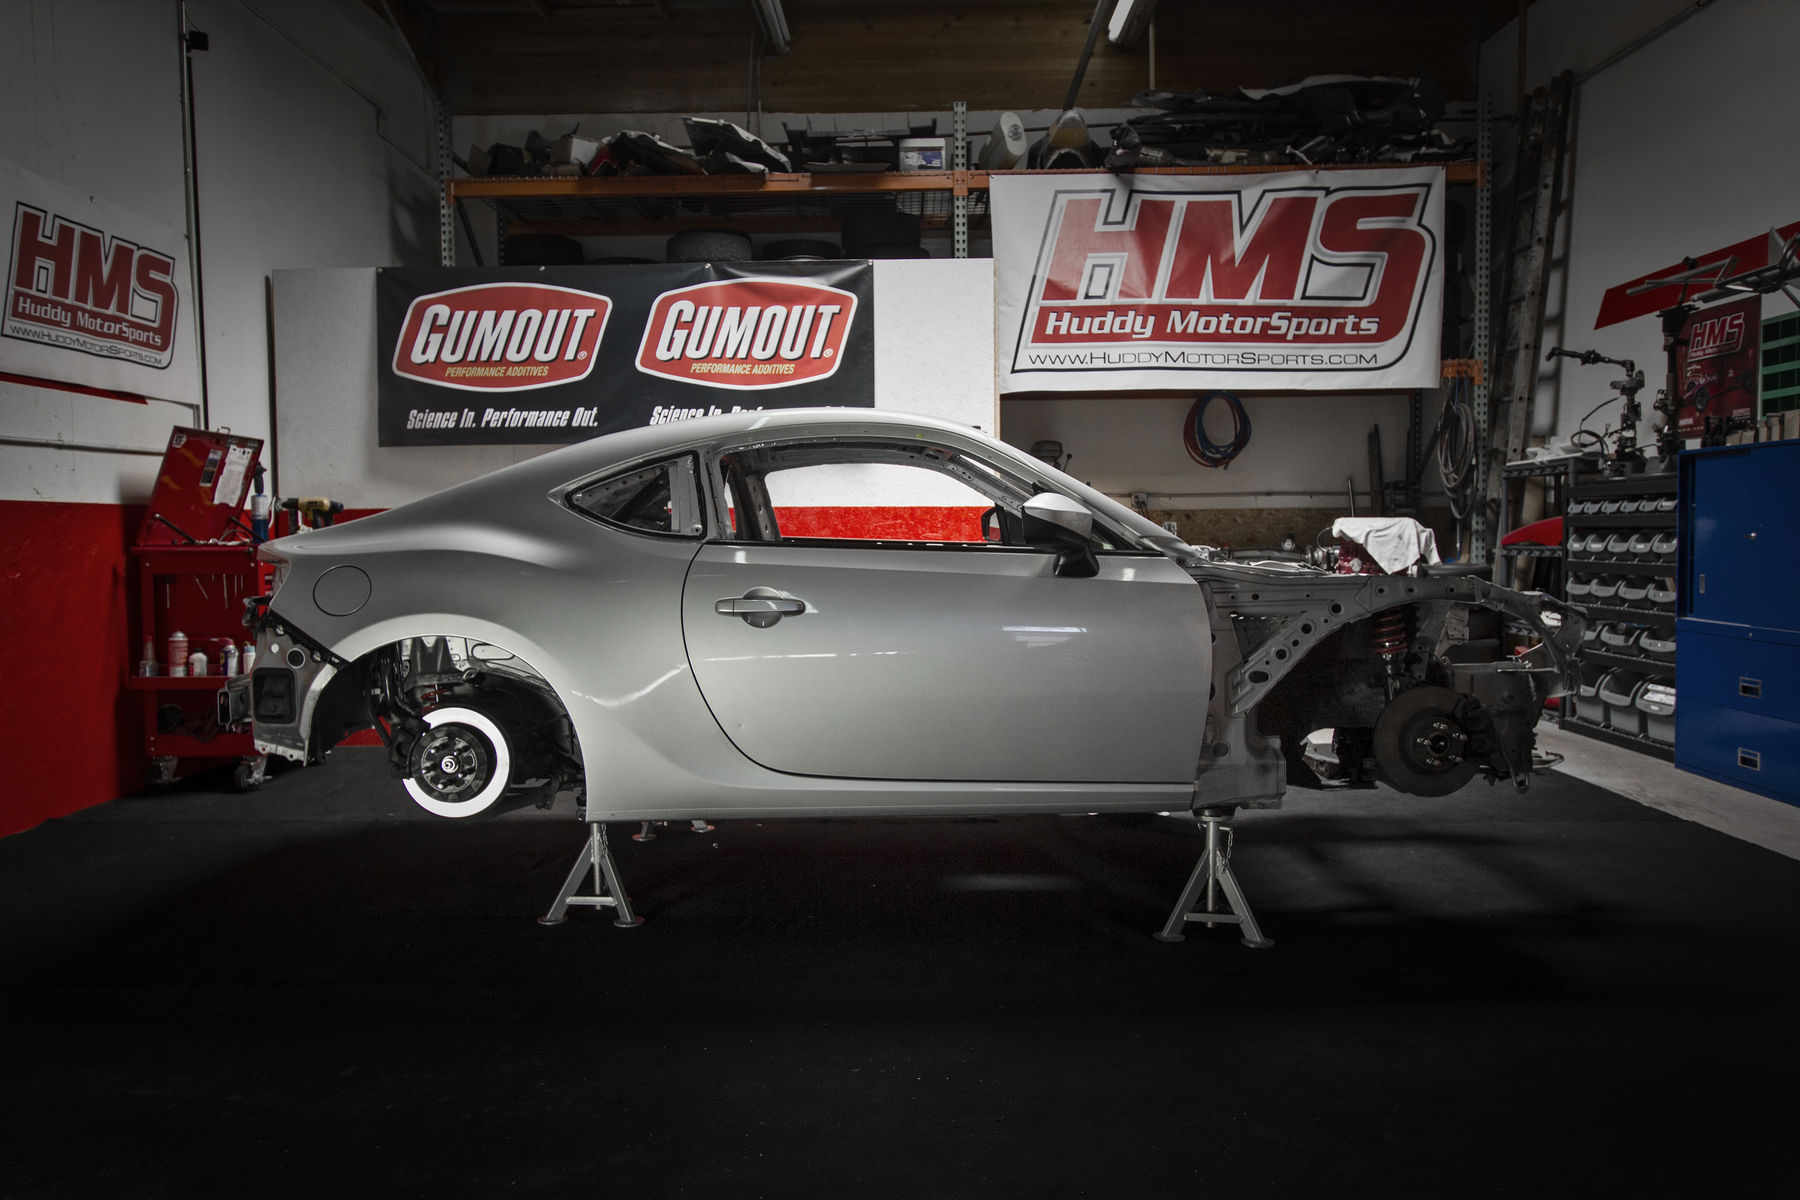 2016 Toyota GT86 | Yep, it's a Toyota - The making of a JDM Supercar